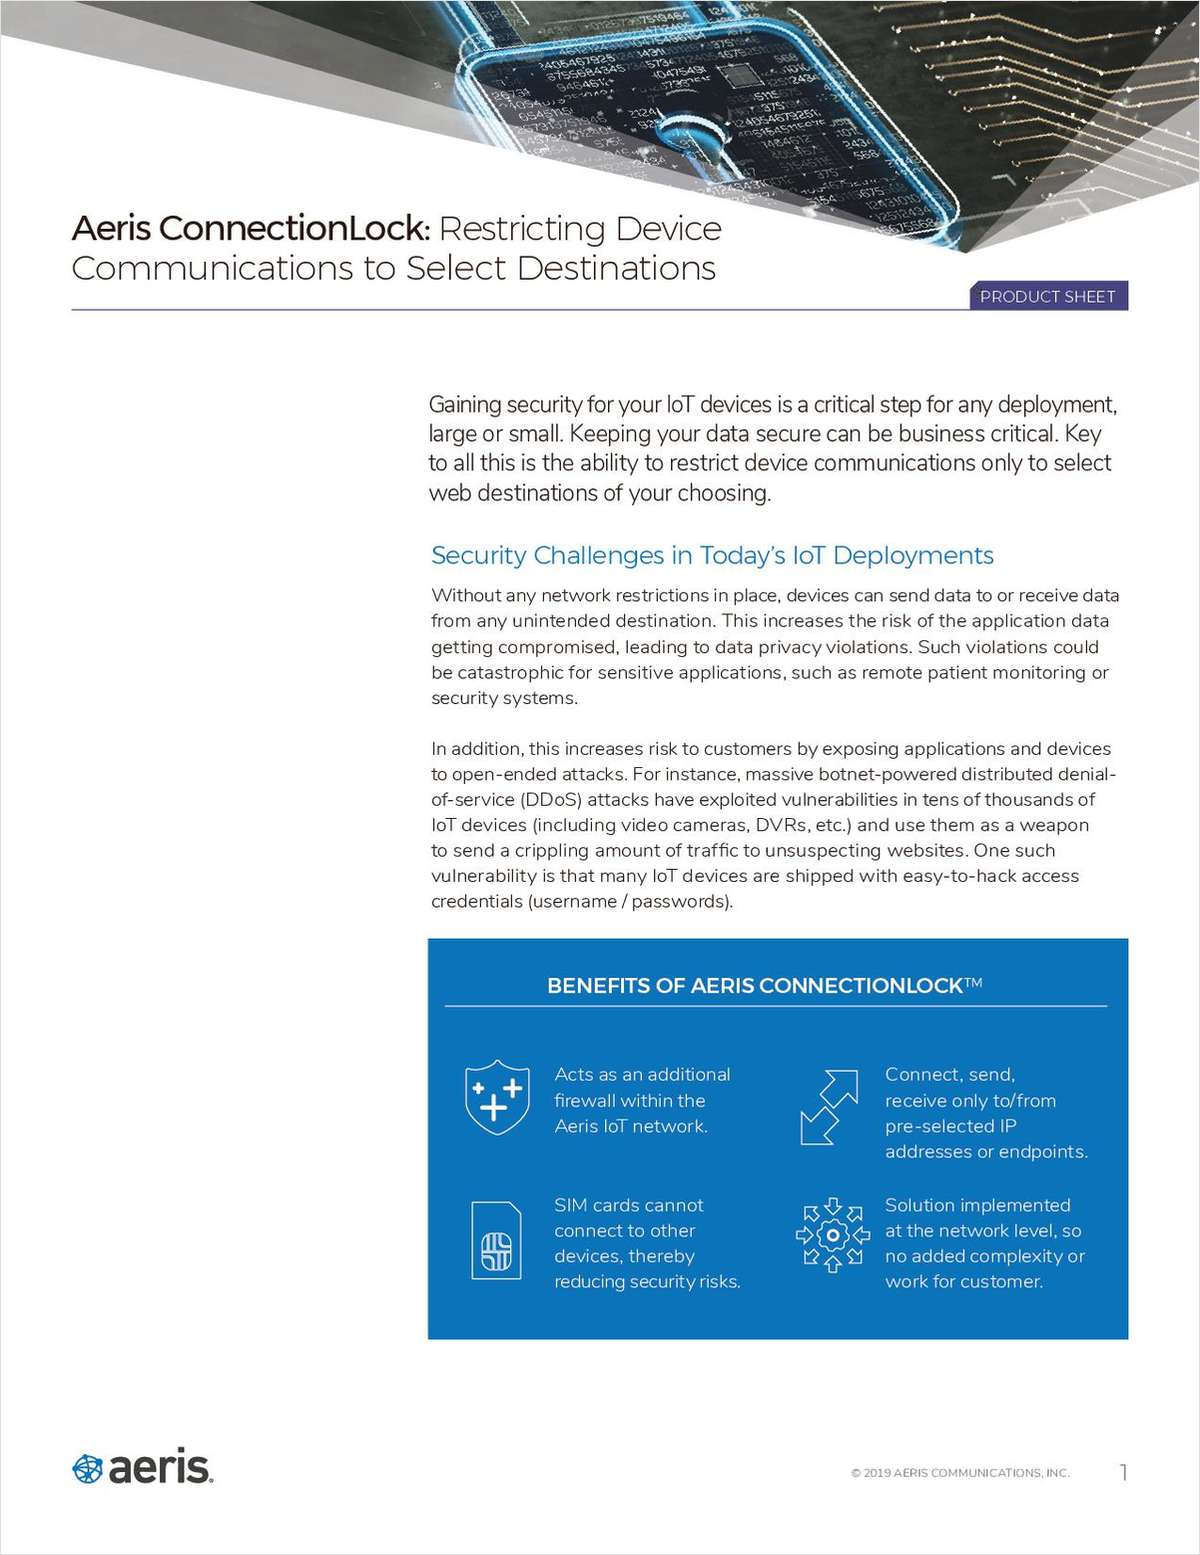 Aeris ConnectionLock: Restricting Device Communications to Select Destinations